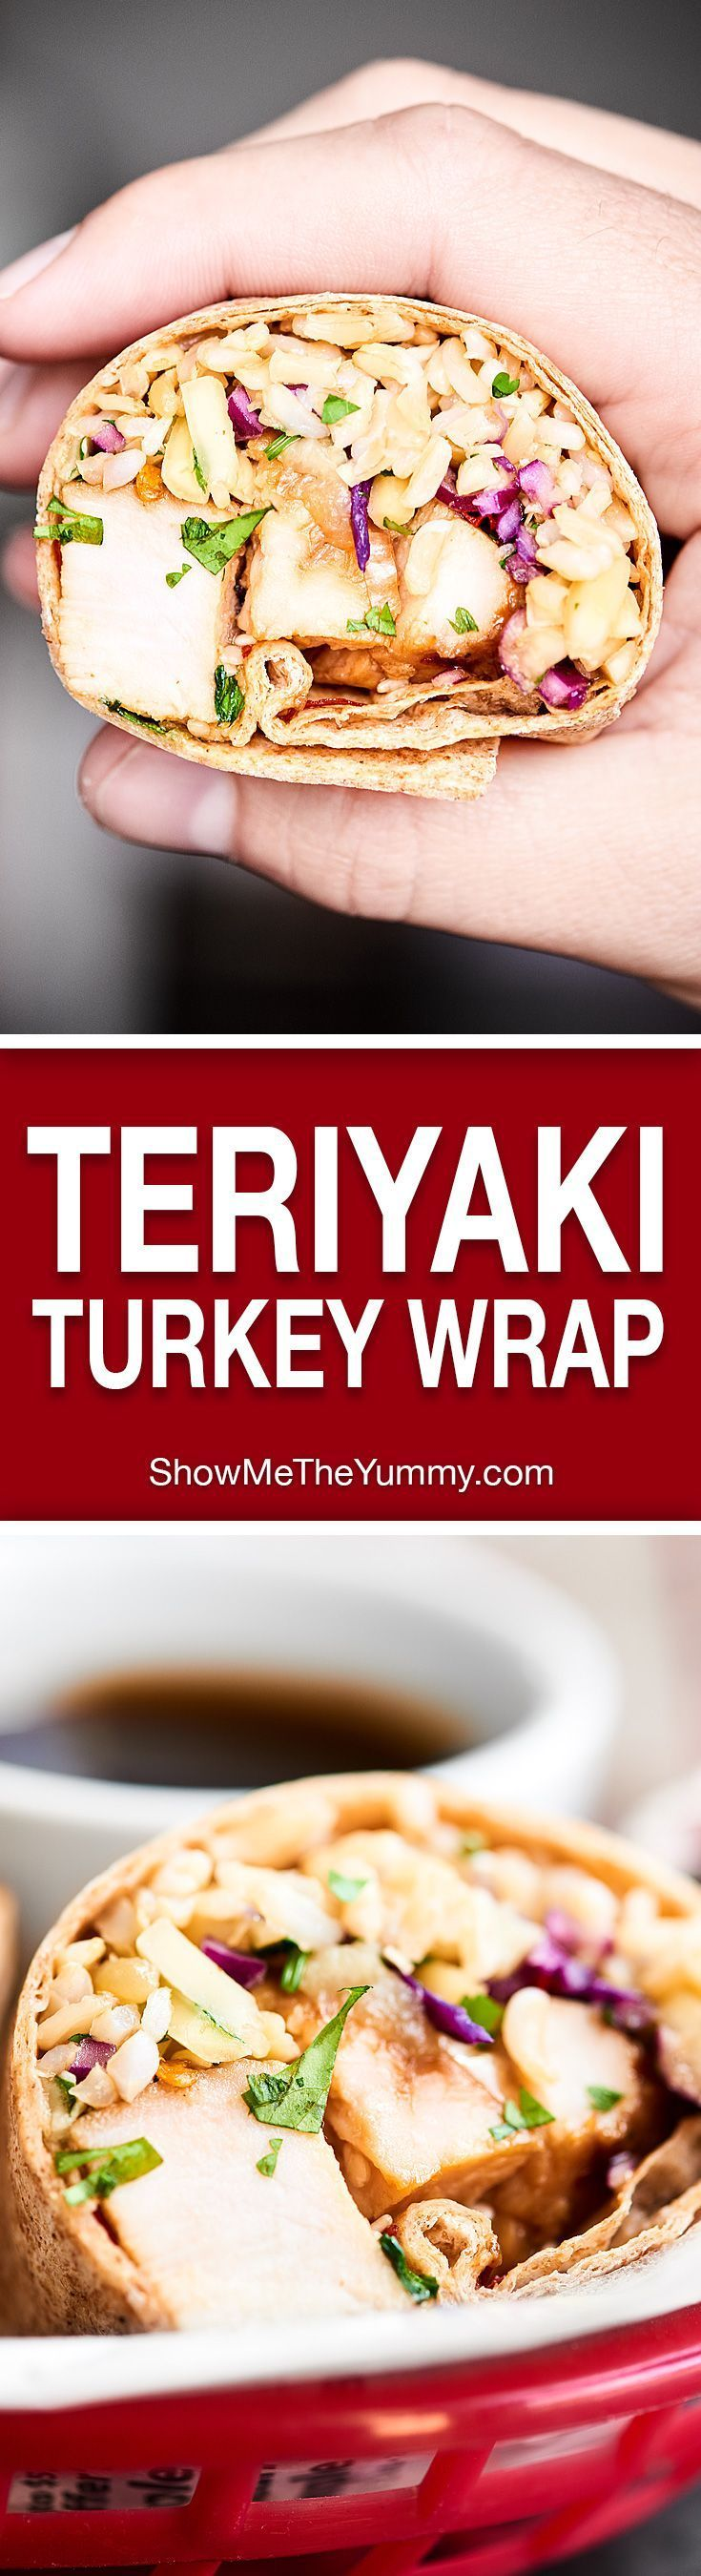 A great use of leftovers, this Teriyaki Turkey Wrap is full of tender turkey, sweet pineapple, crunchy/salty/savory/fresh slaw, earthy brown rice, and a chewy whole wheat tortilla!